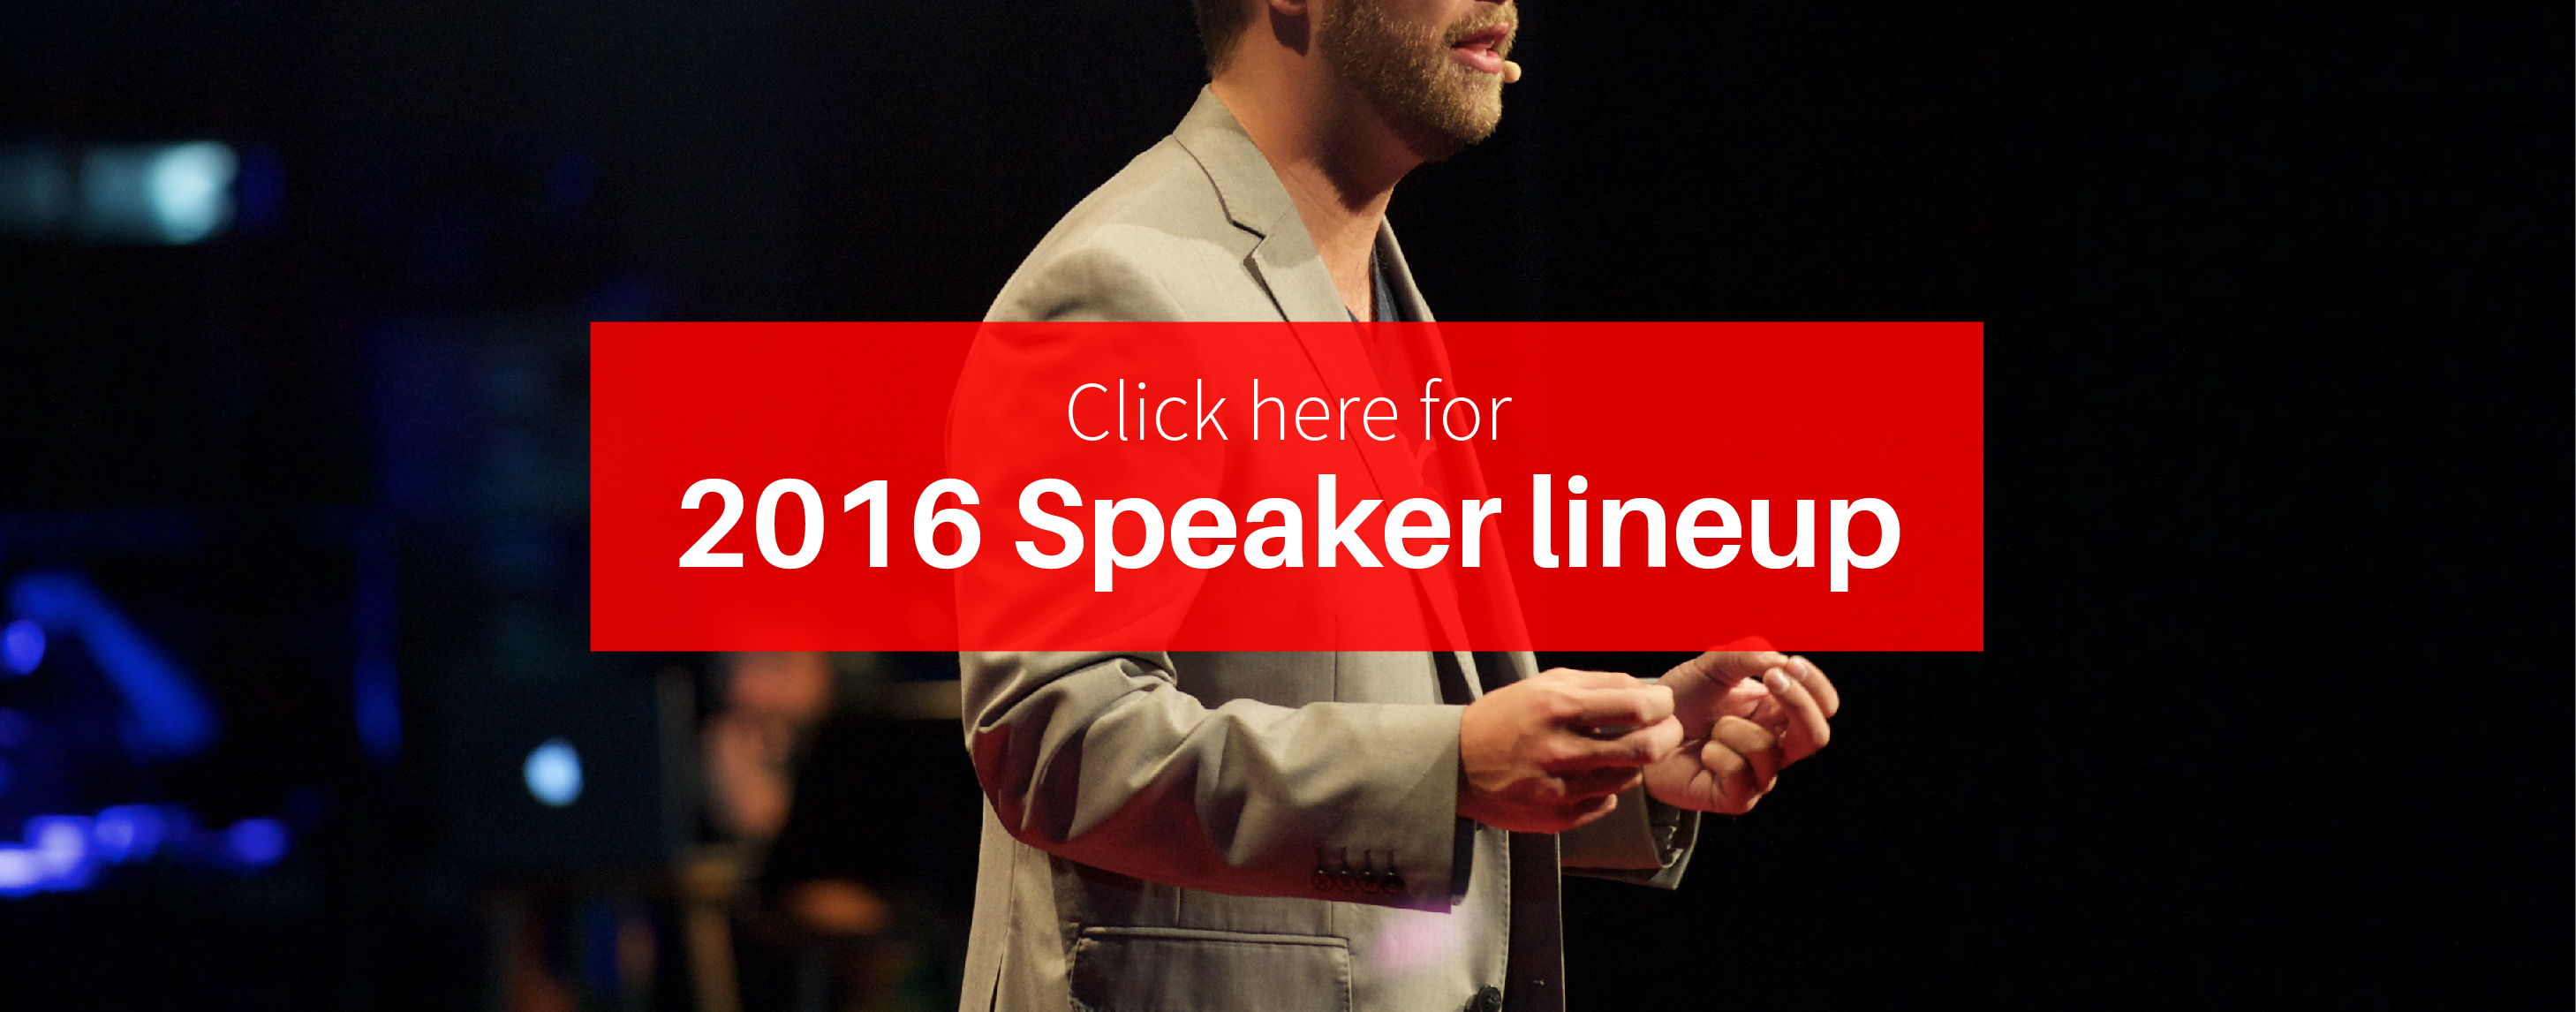 TEDx_speakerlineup_web-10